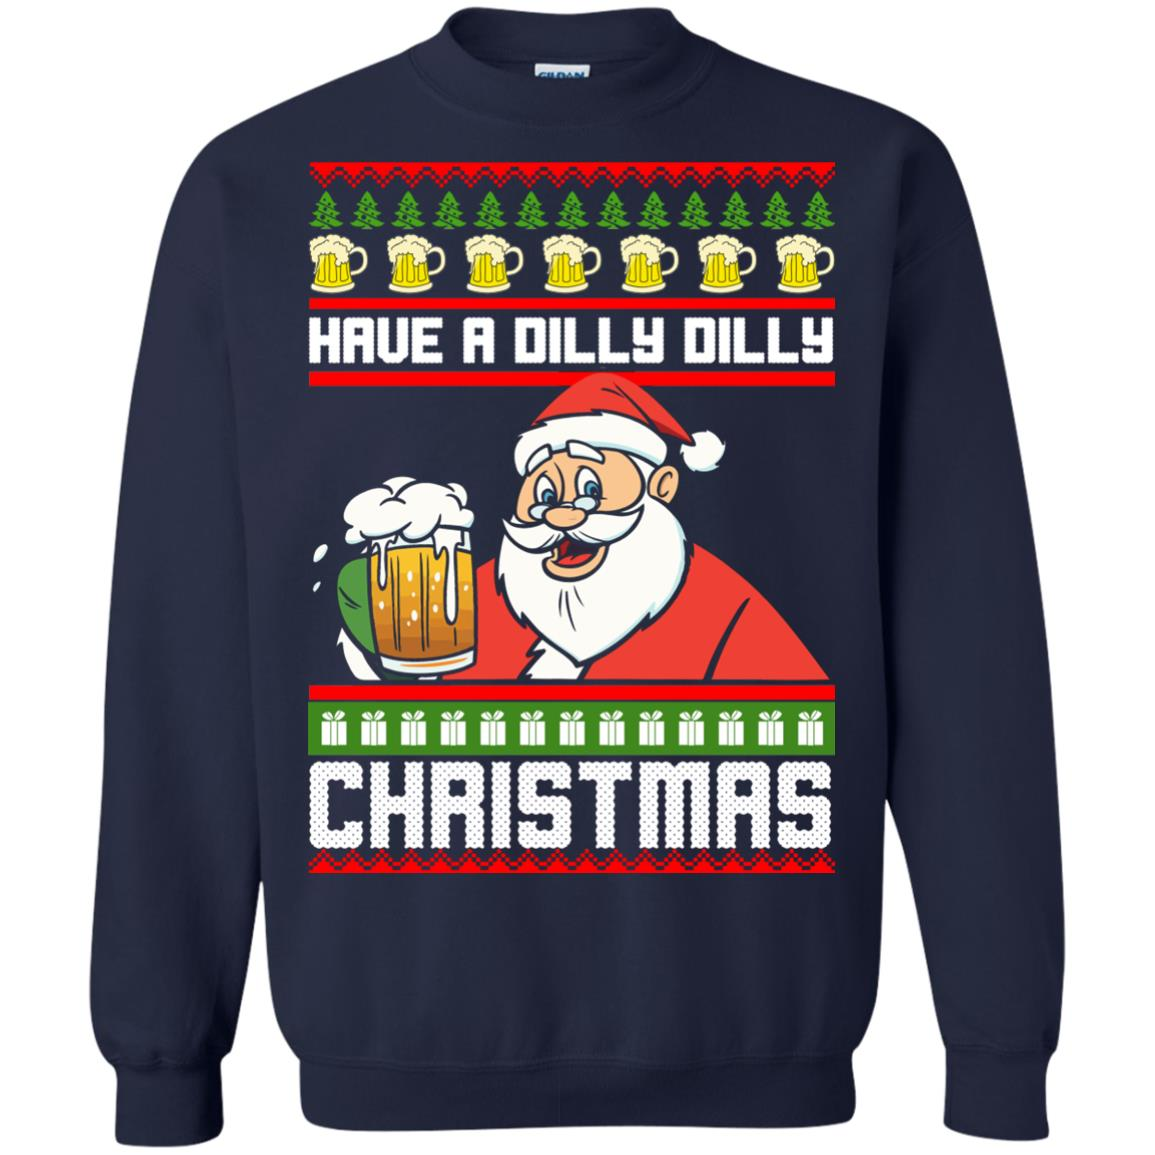 image 6133 - Have a Dilly Dilly Christmas Ugly Sweatshirt, Long Sleeve